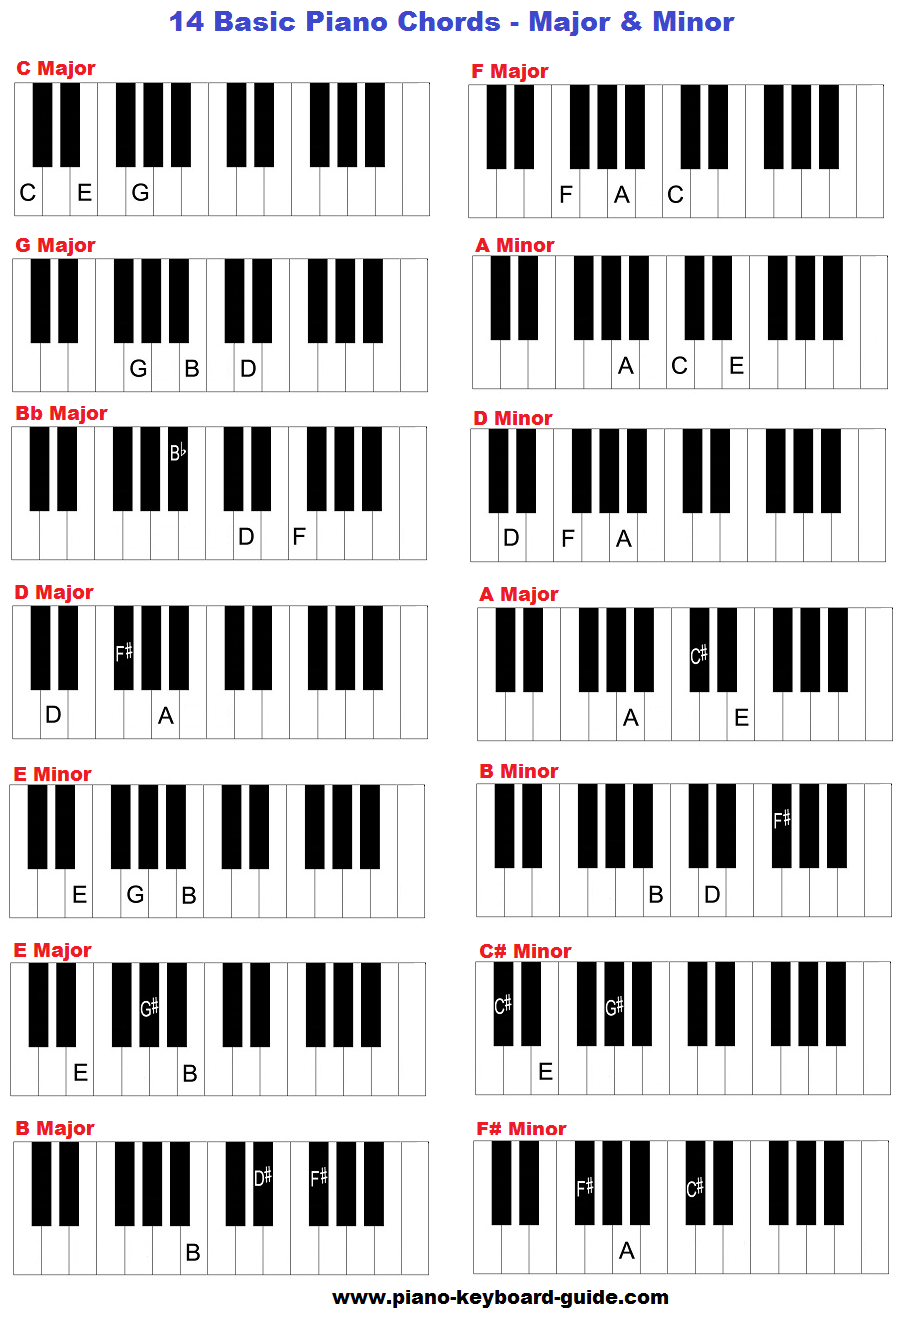 14 Basic, Easy Piano Chords, Major And Minor